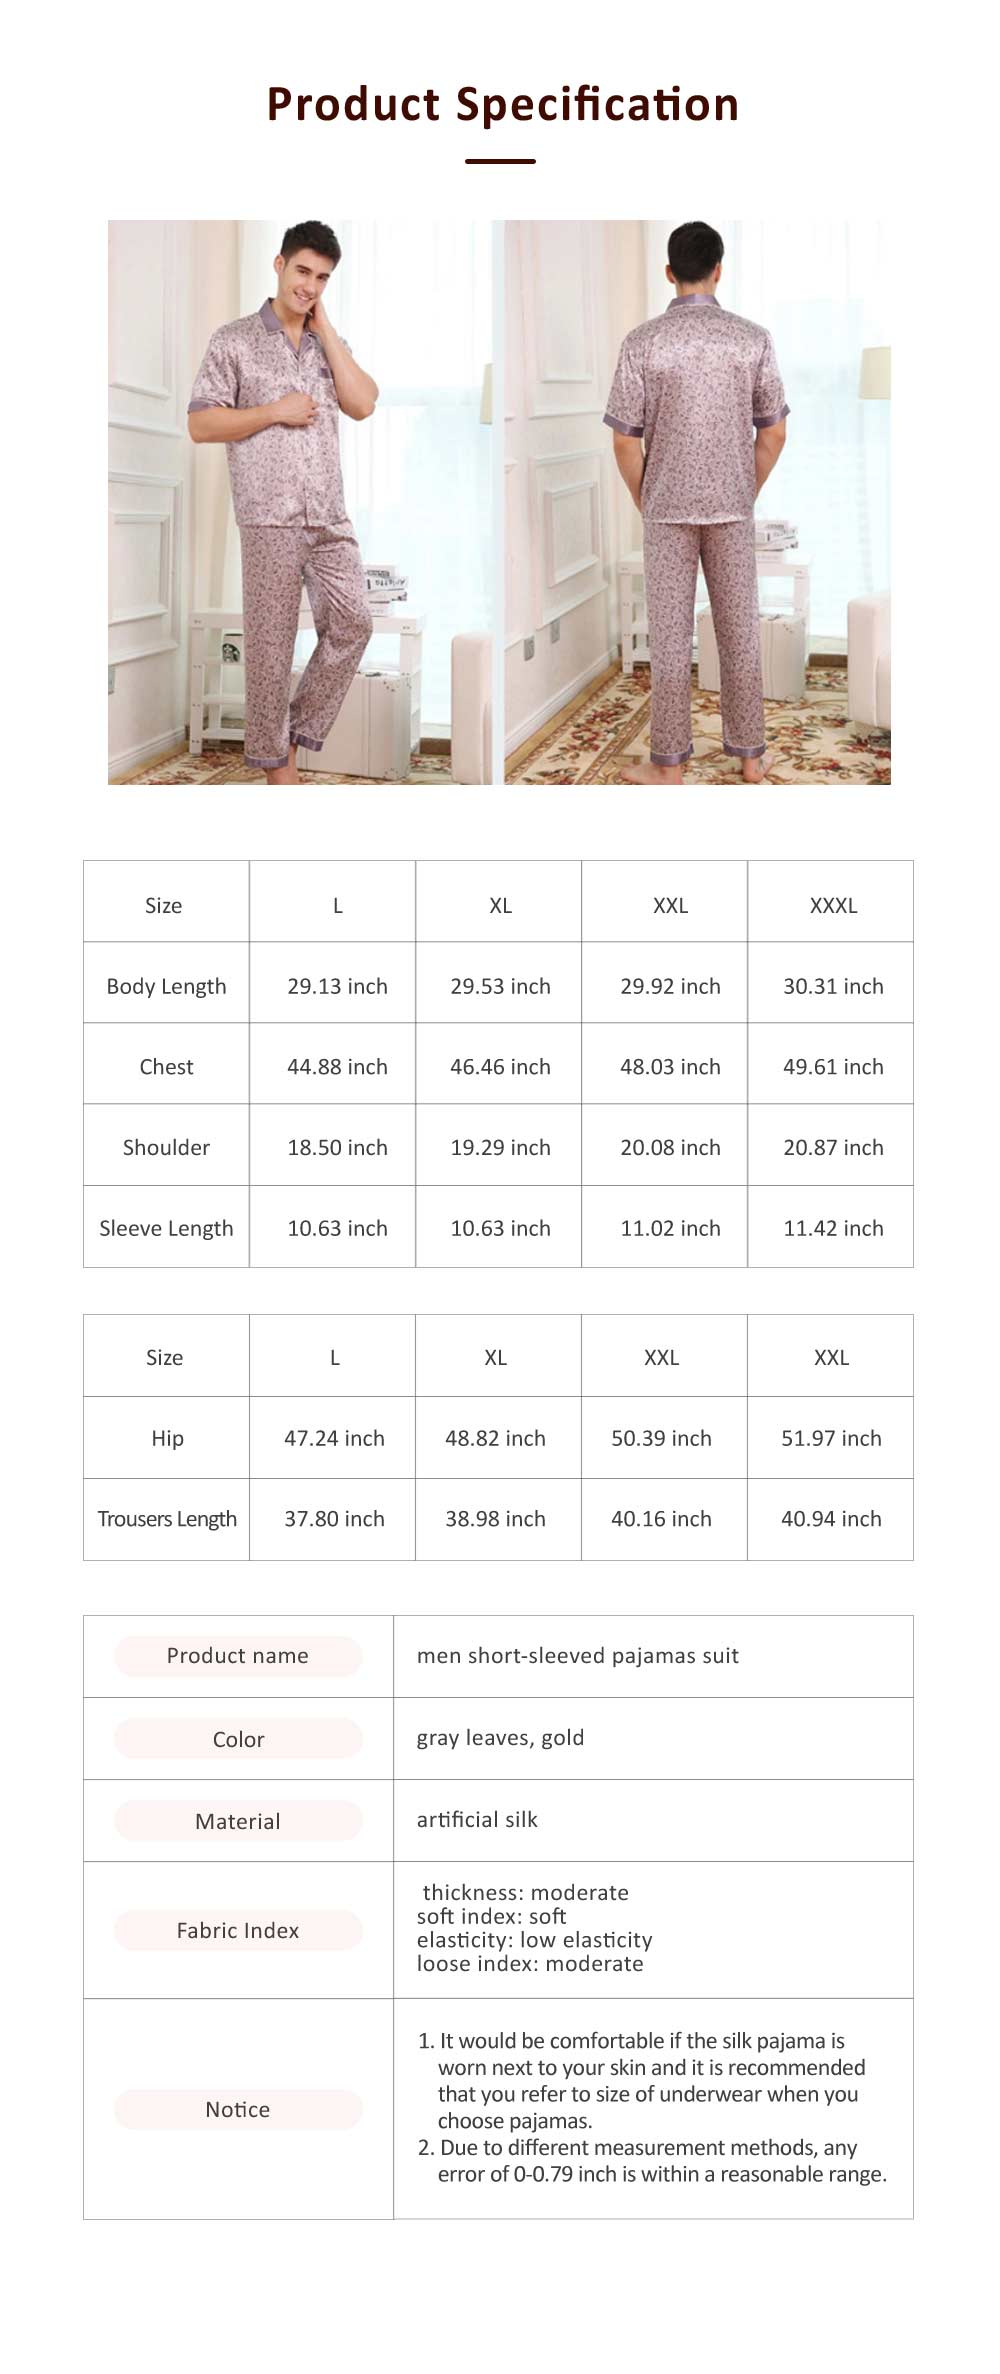 Spring Summer Artificial Silk Men Short Sleeve Pajamas Set, Delicate Elegant Pattern Satin Long Sleepwear Suit 6